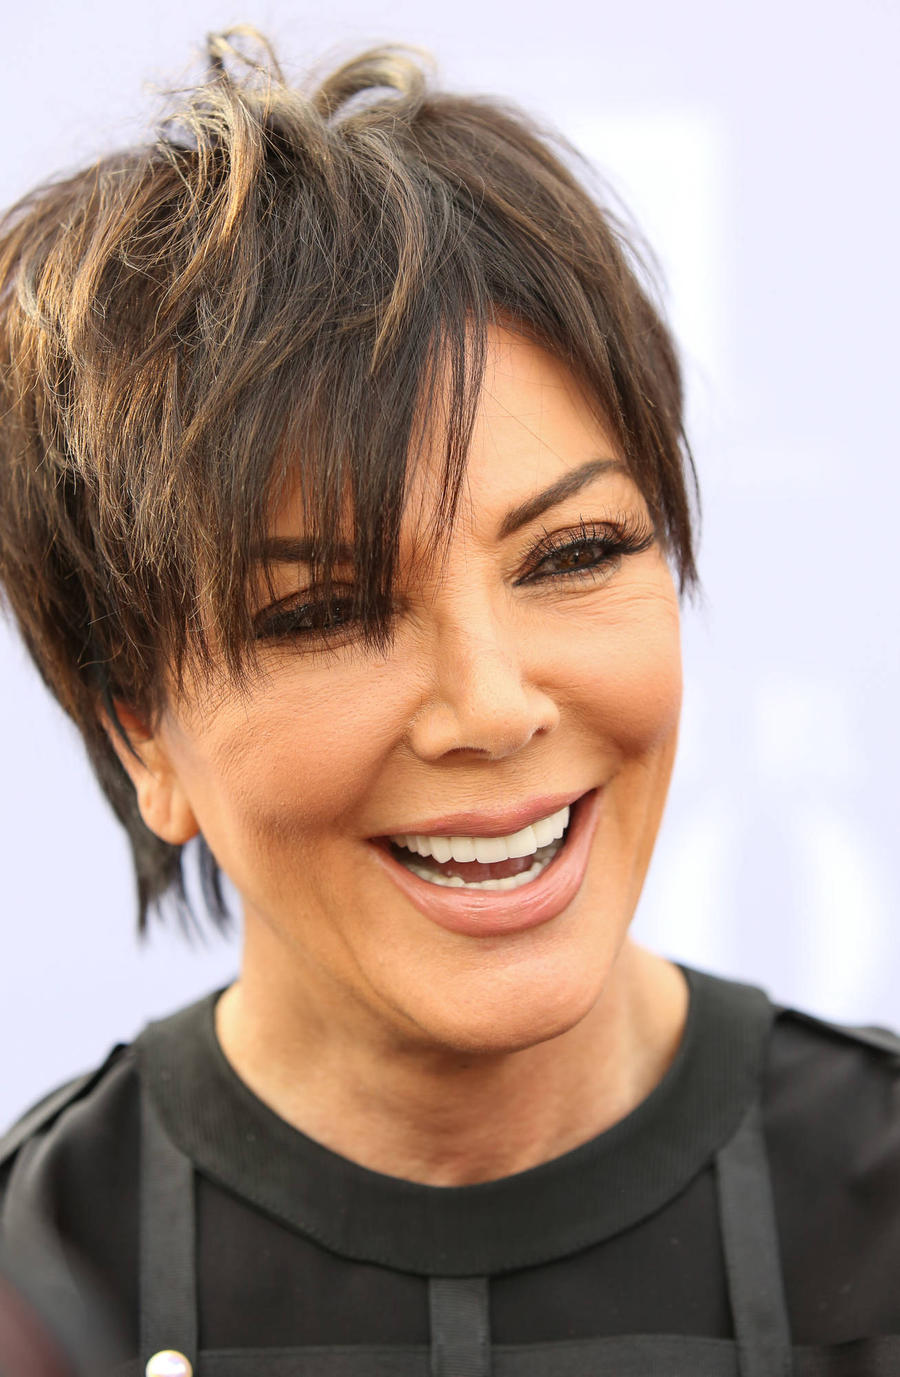 Kris Jenner: 'Nicole Brown Simpson Helped Me Get Through A Miscarriage'